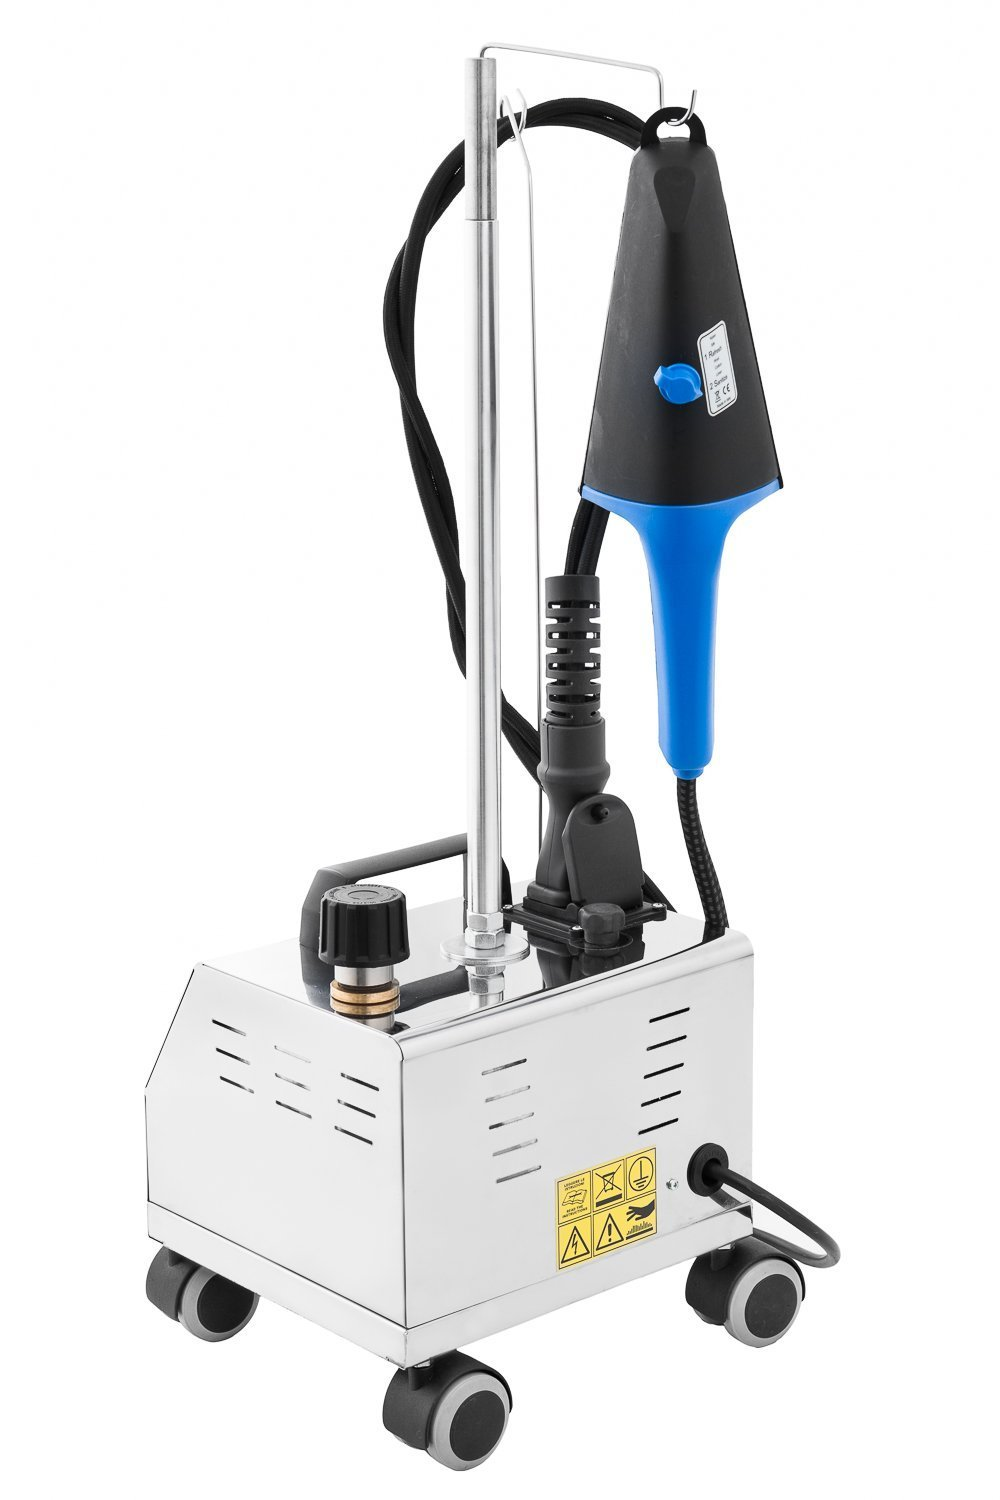 EOLO Steam brush for vertical ironing with energy saving copper boiler and external anti-scale resistor AV02 INOX Pro1 - 110-120 Volts